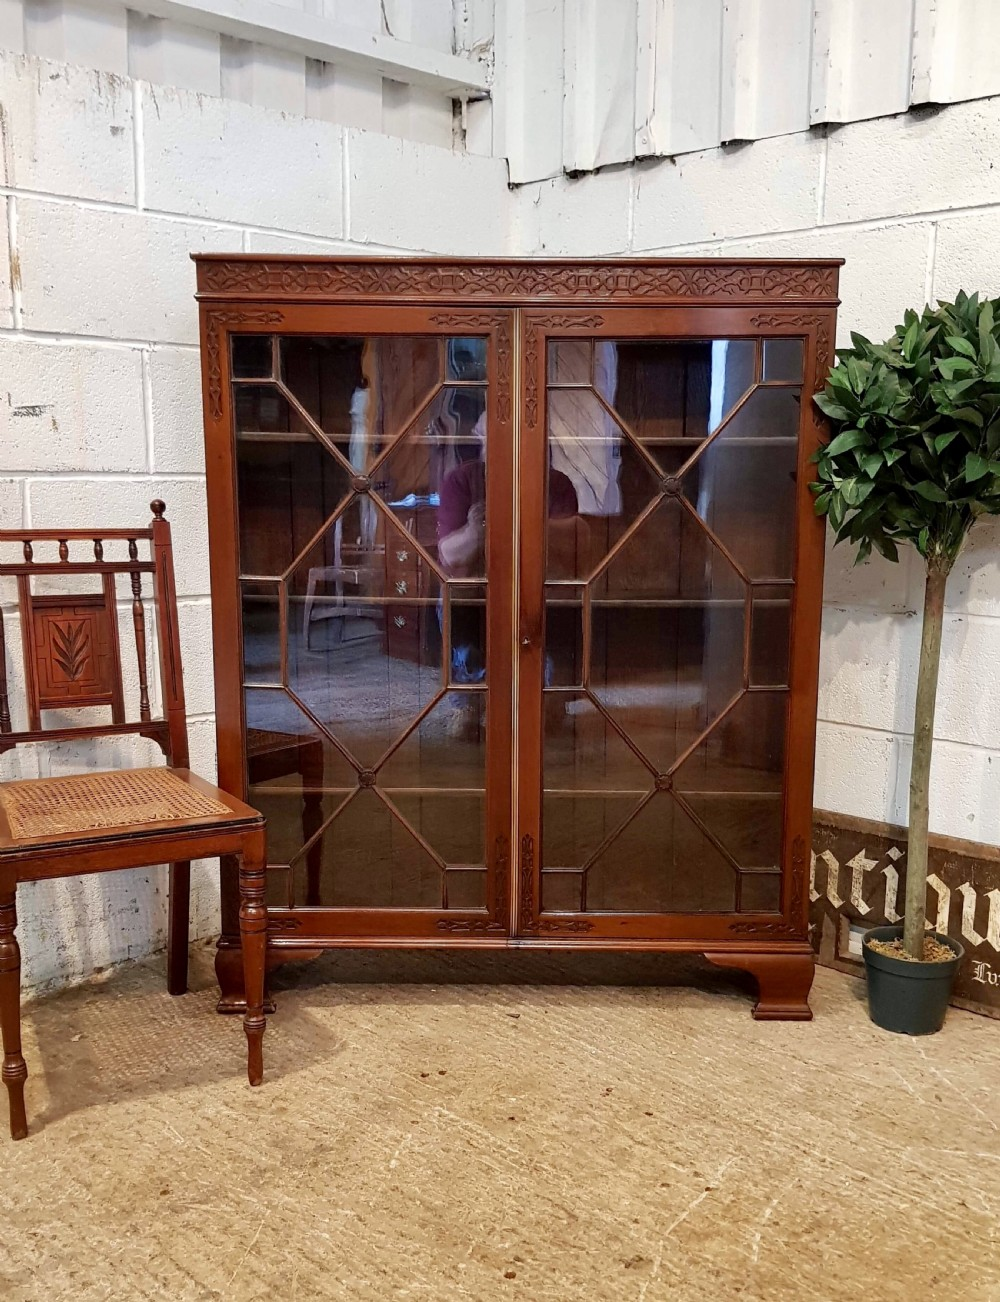 antique edwardian chippendale mahogany astragal glazed bookcase c1900